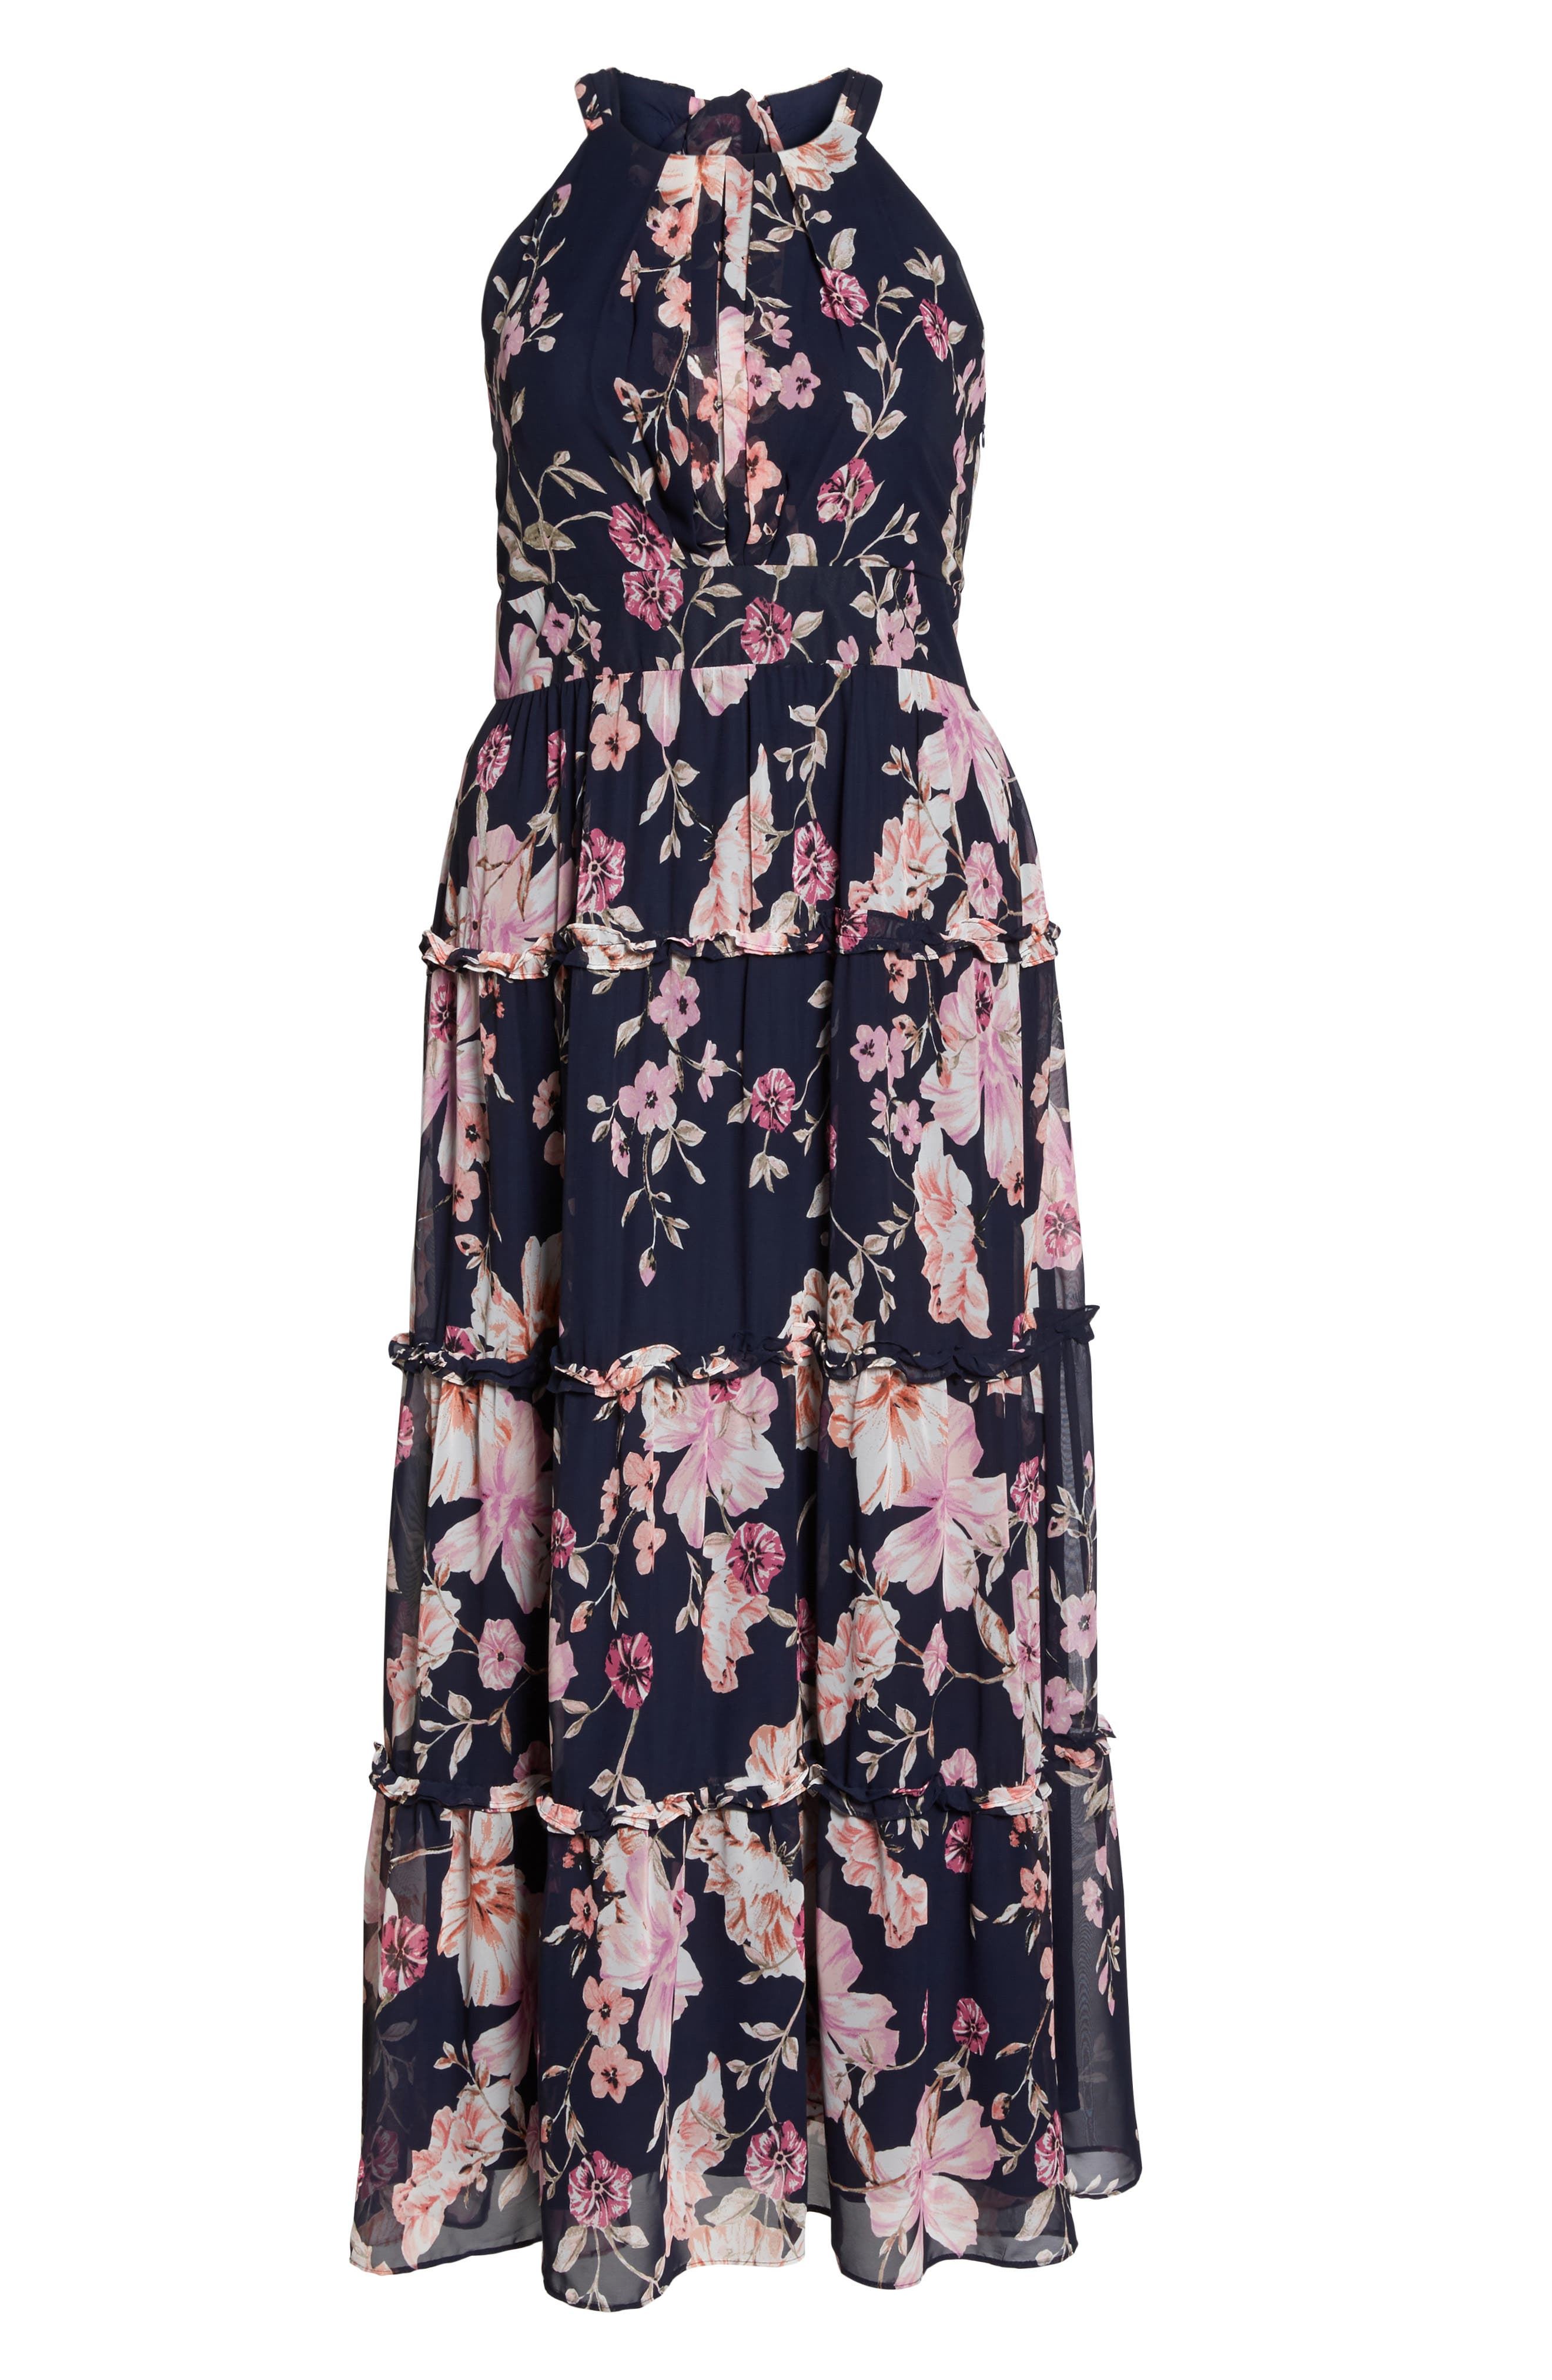 Floral Ruffle Trim Chiffon Halter Maxi Dress,                             Alternate thumbnail 6, color,                             Navy/ Pink